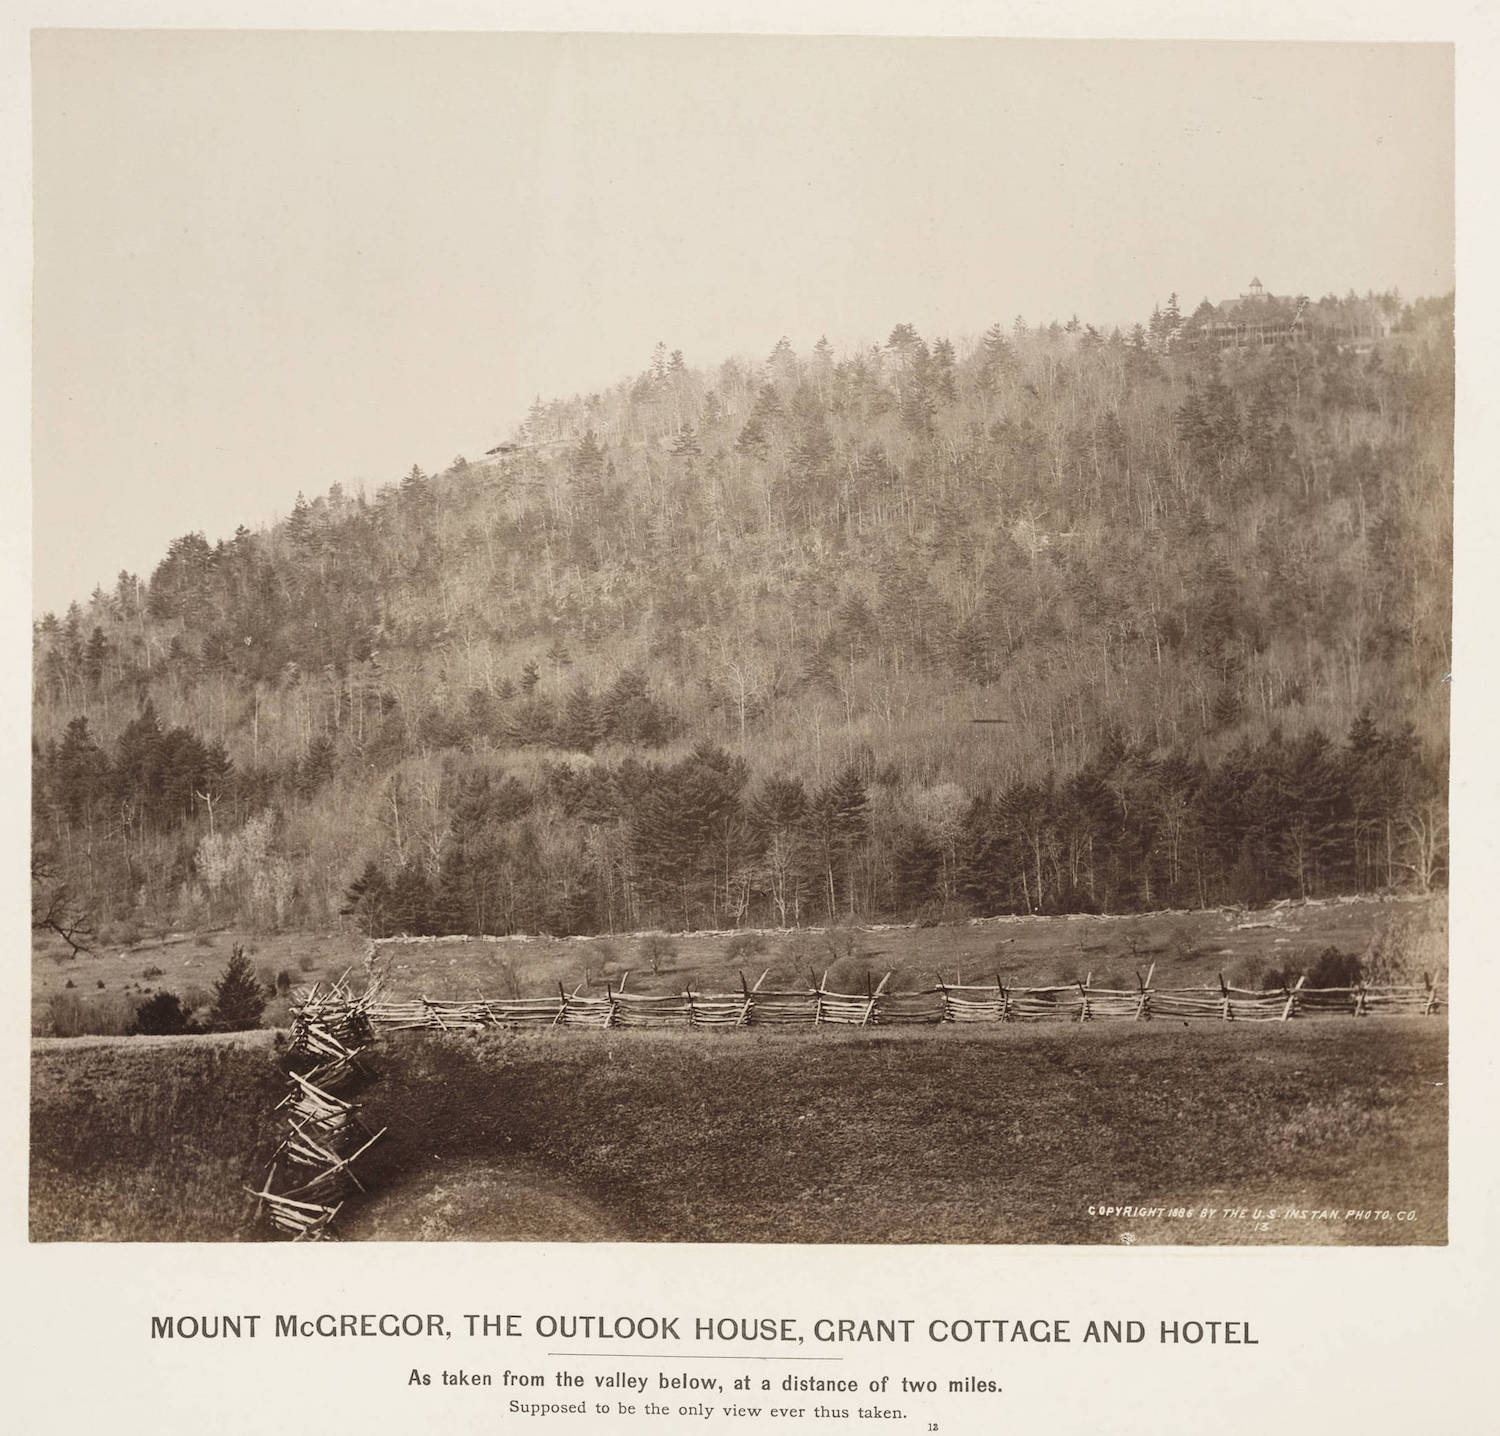 MOUNT MCGREGOR IN THE 1890s